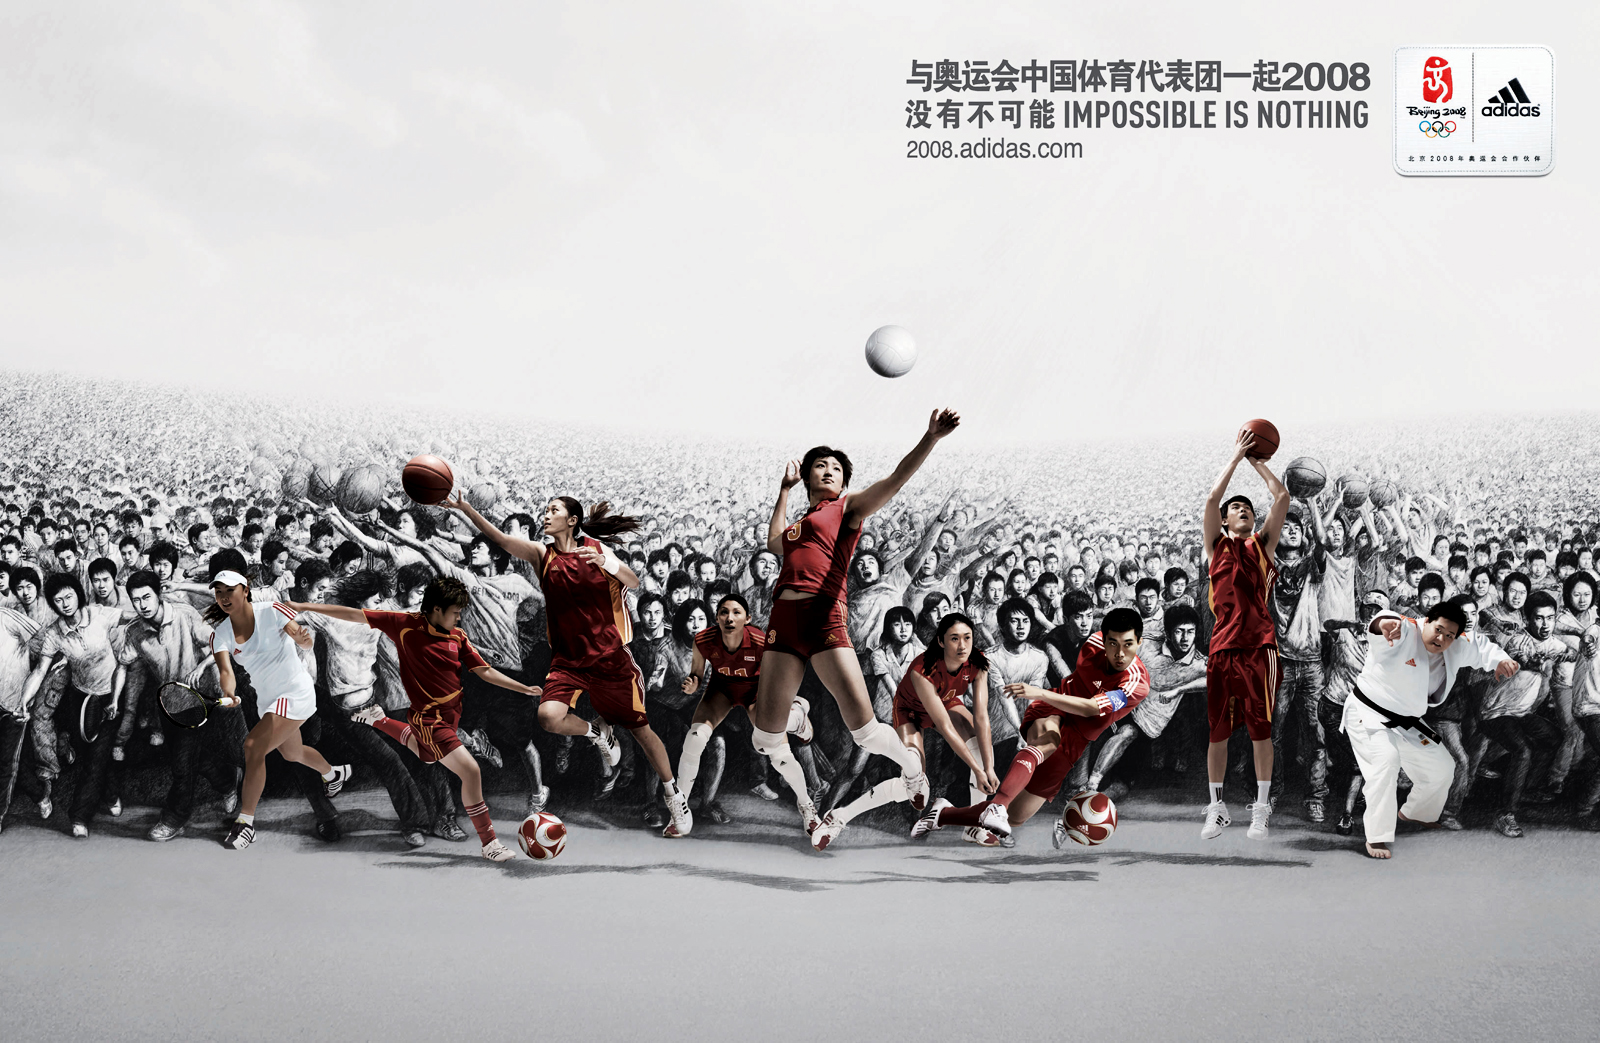 http://4.bp.blogspot.com/-v0sc8oRIpSU/T9GuRxXz1CI/AAAAAAAACFw/JVRX2GpqTyc/s1600/Adidas_Beijing_2008_Ads_Impossible_Is_Nothing_Volleyboll_HD_Wallpaper-Vvallpaper.Net.jpg